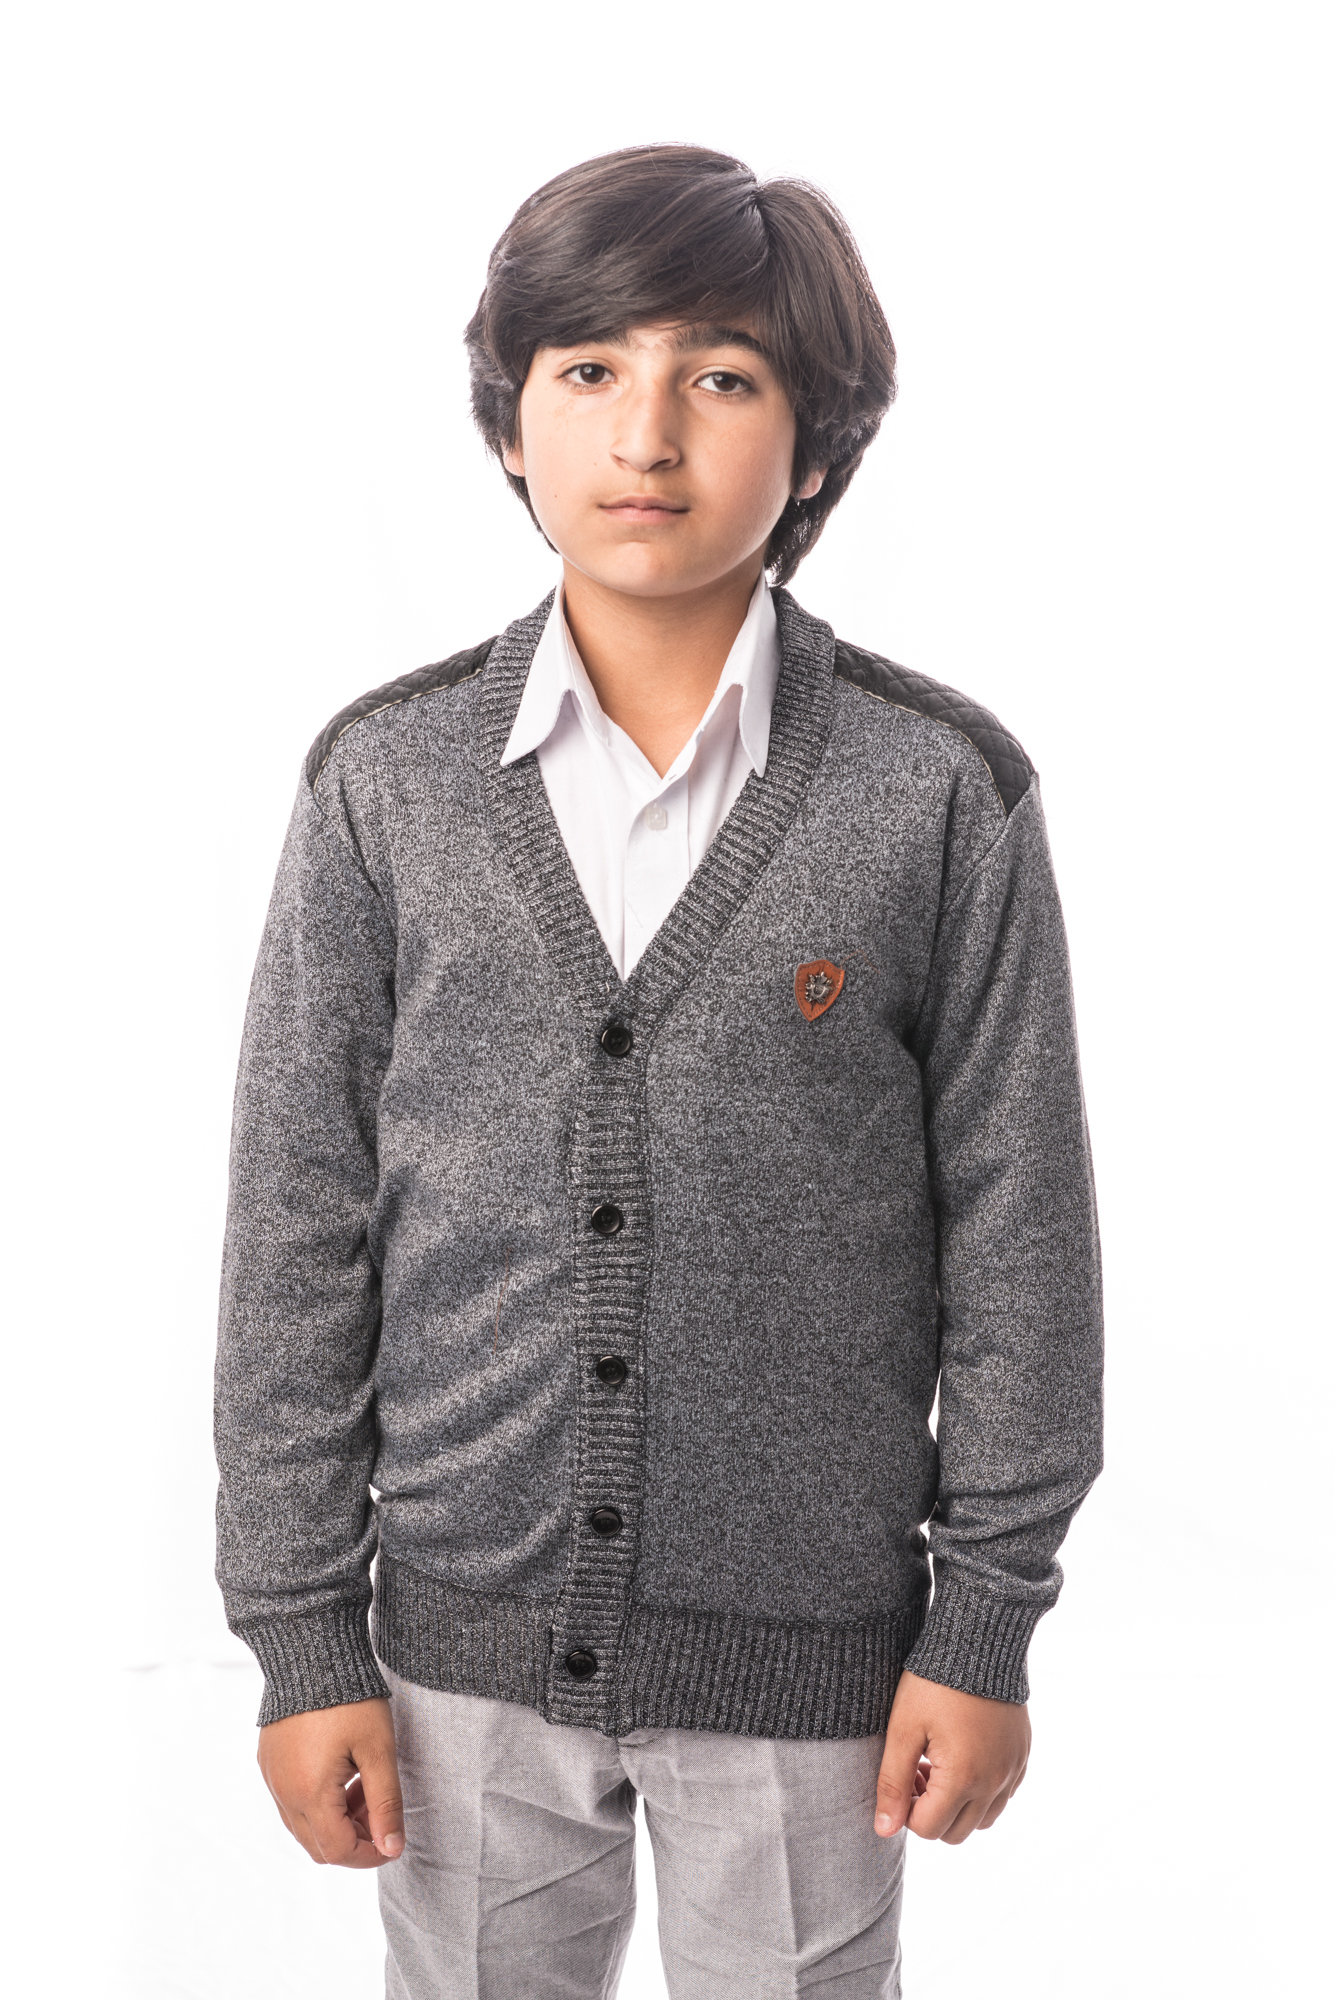 Mélange Cardigan with Leather Elbow Patch Boys Sweater EBST1613B